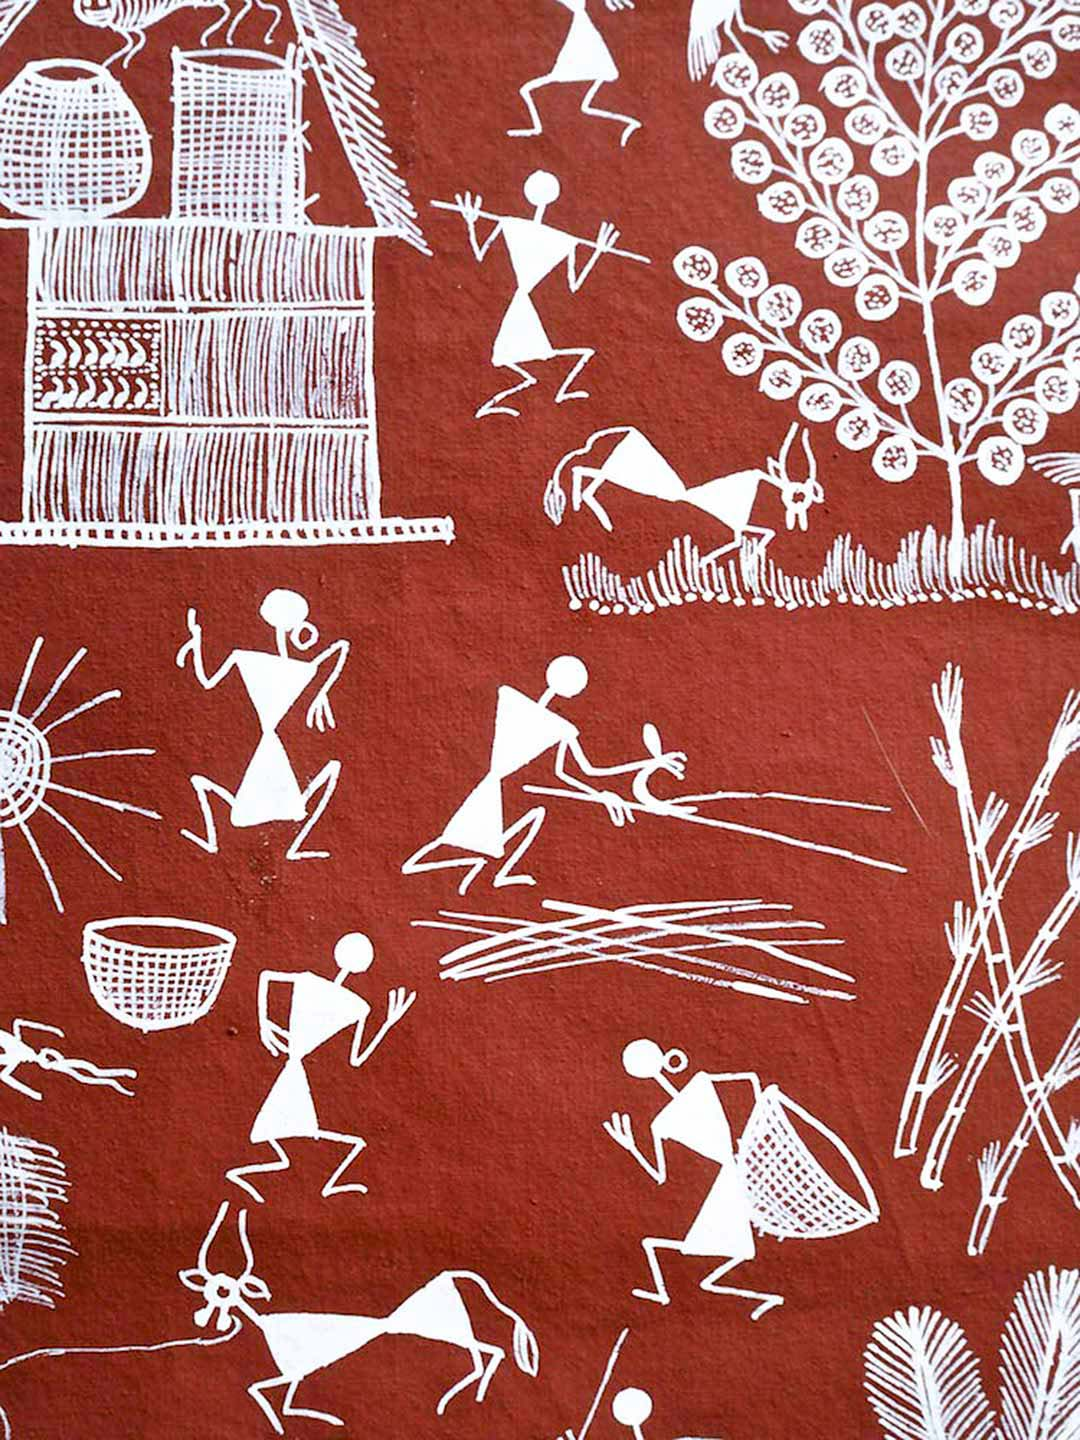 Warli Painting on Reddish-brown Background